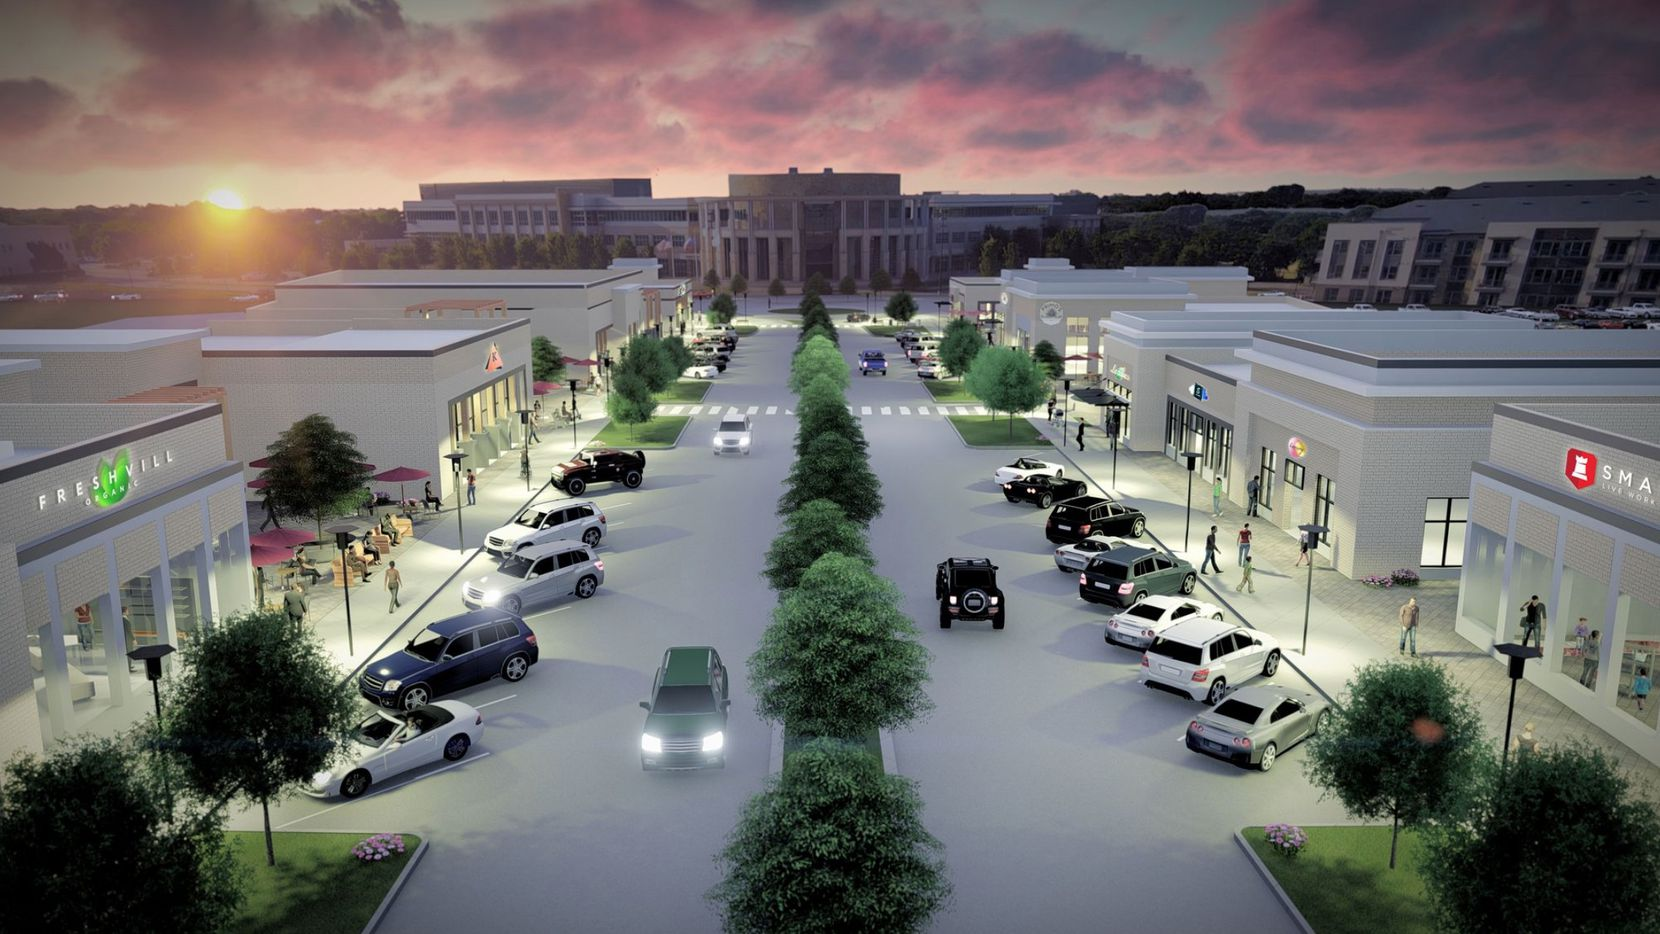 The City Point retail project is part of the redevelopment of the former North Hills Mall site.